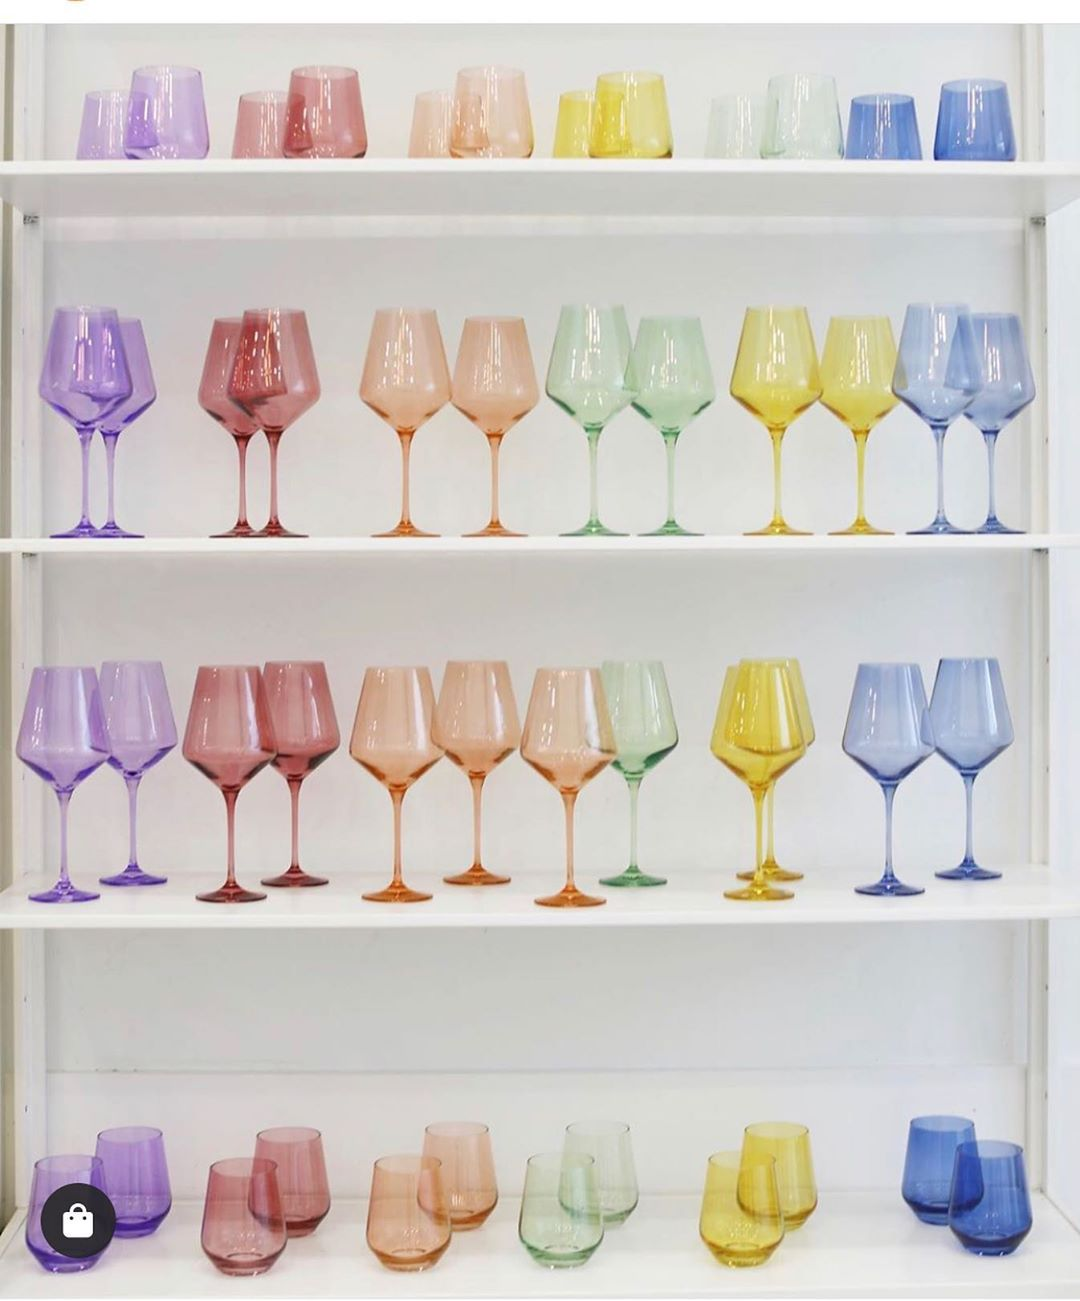 colorful wine glasses